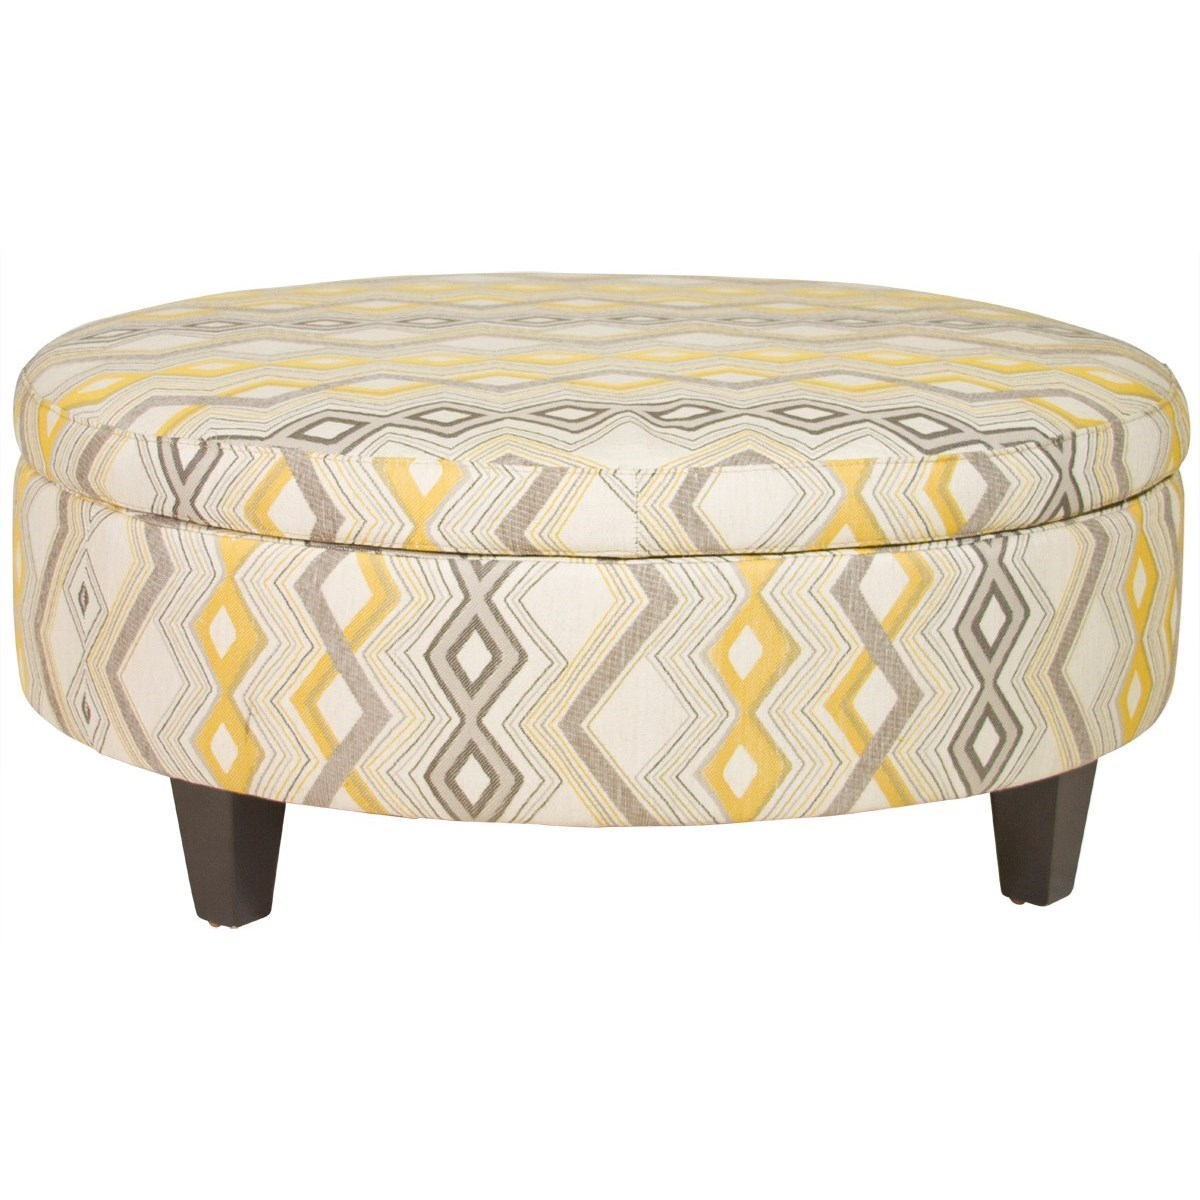 Jonathan Louis Ottomans Large Round Storage Ottoman - Item Number: 02362